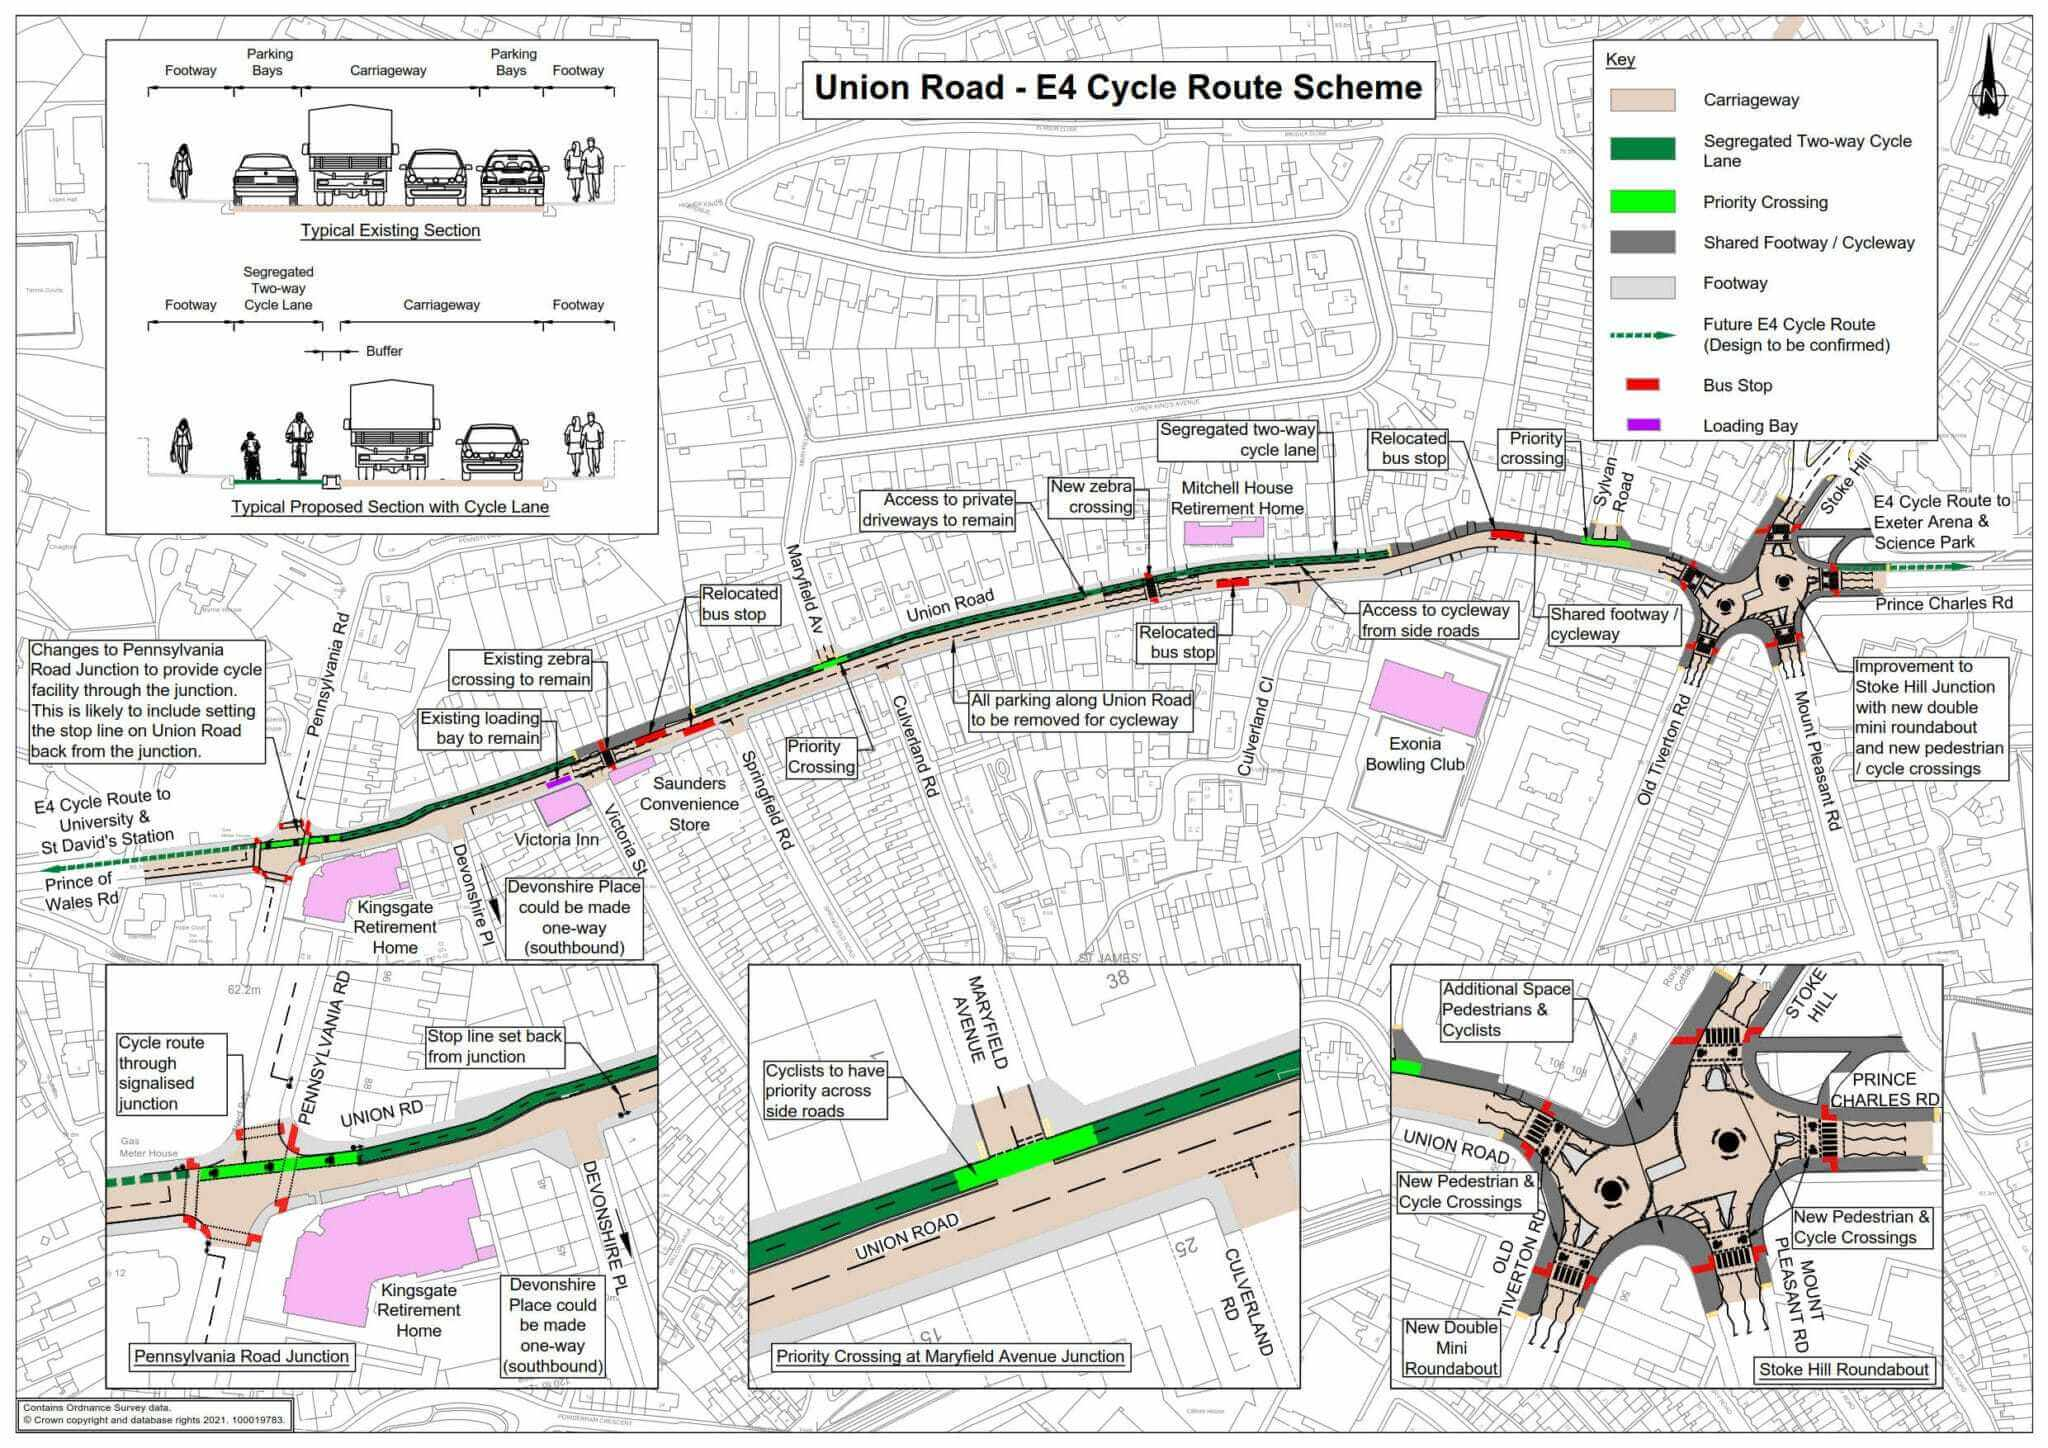 The proposed changes as part of the E4 cycle route in Exeter. Image: DCC